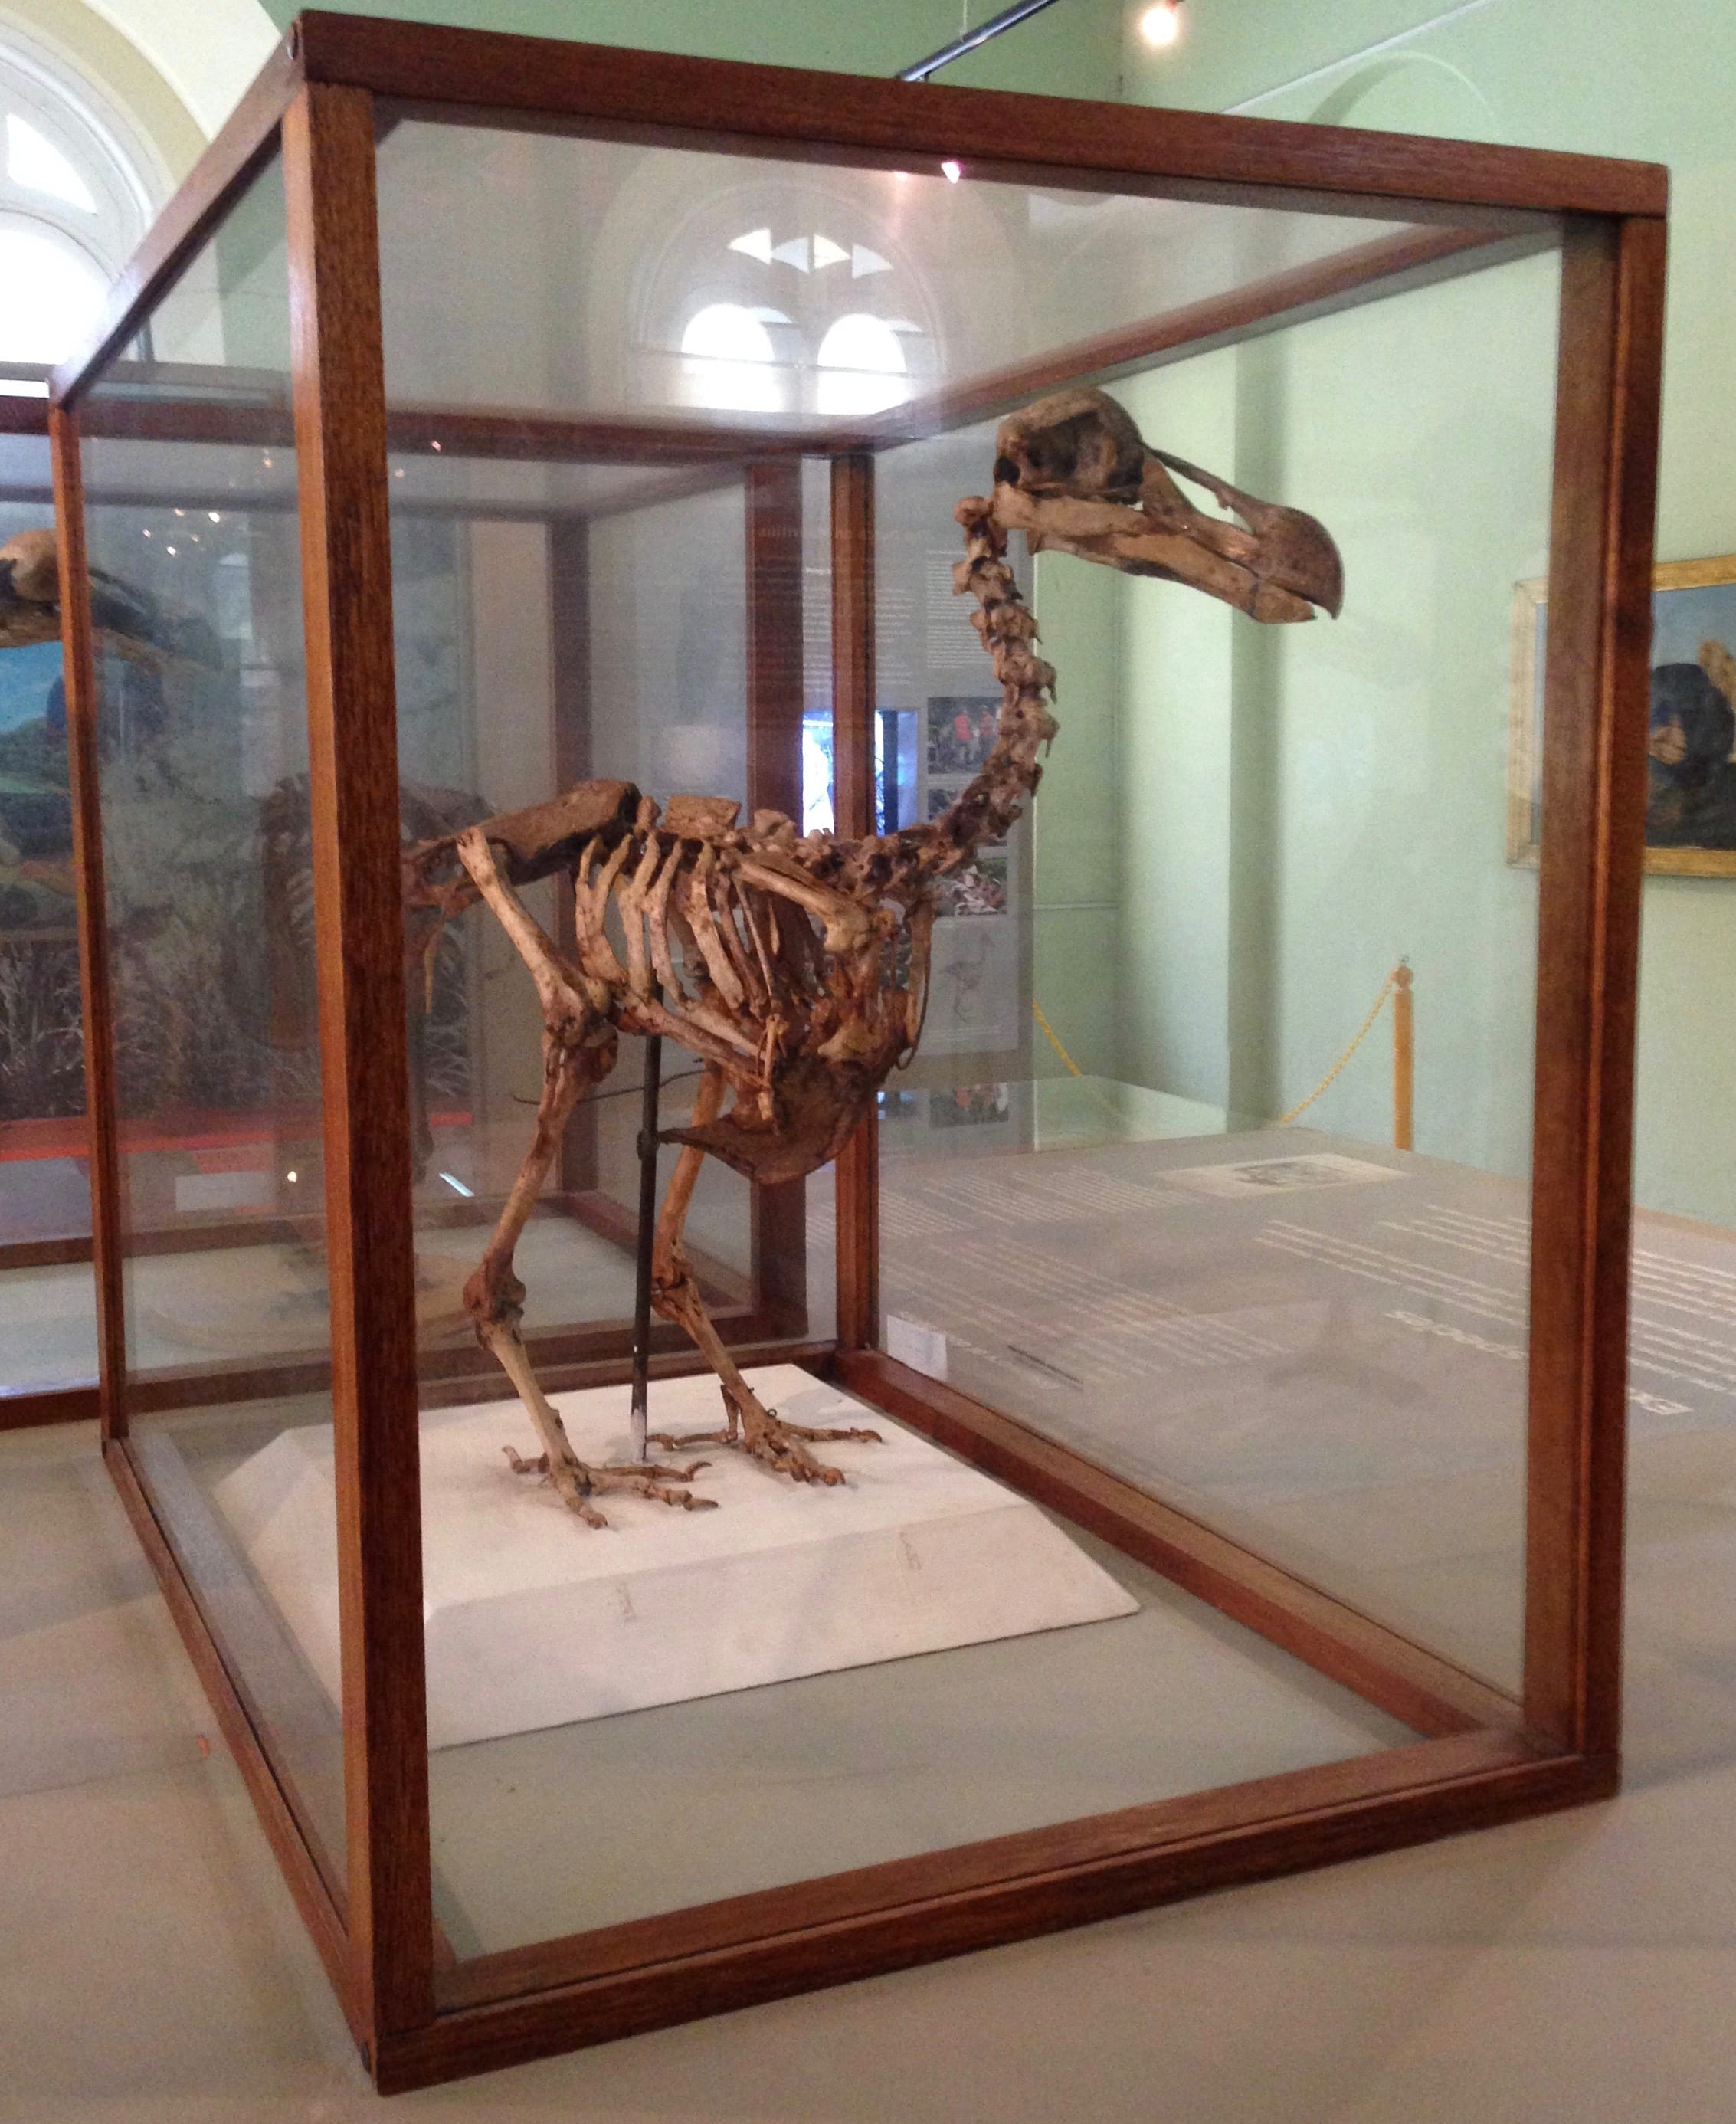 Skeleton of the extinct Dodo, endemic to Mauritius, on display at the Mauritius Natural History Museum, Port Louis, Mauritius.